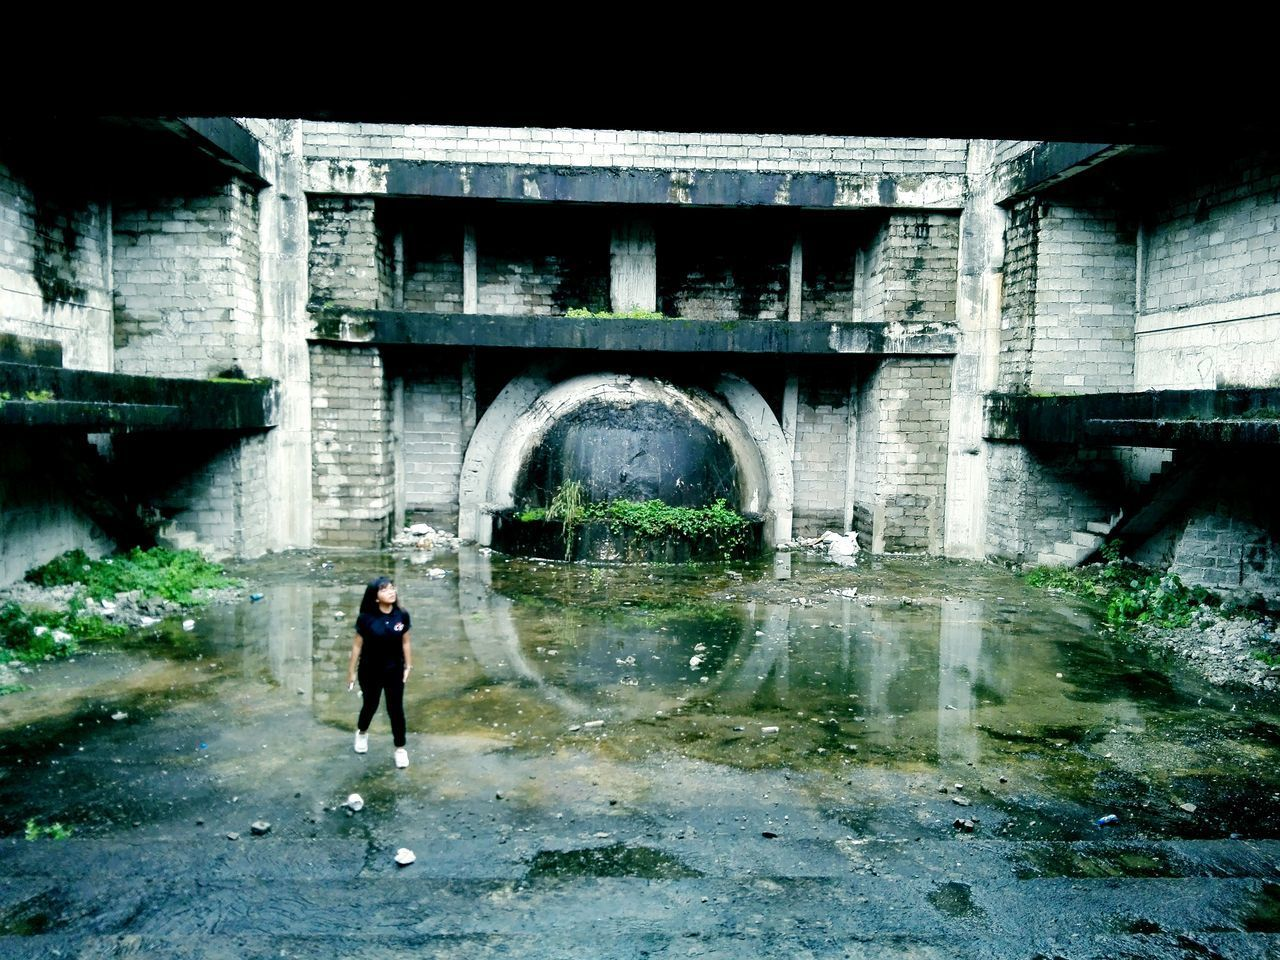 Bridge - Man Made Structure Connection Architecture Built Structure Below Water Arch Full Length Day Outdoors Under People One Person Adult Eyeem Philippines Break The Mold Abandoned Places Abandoned Buildings Abandonedbuilding Abandoned Abandonedplaces Abandonedplace Abandonedbuildings Abandonedschool The Architect - 2017 EyeEm Awards Neighborhood Map